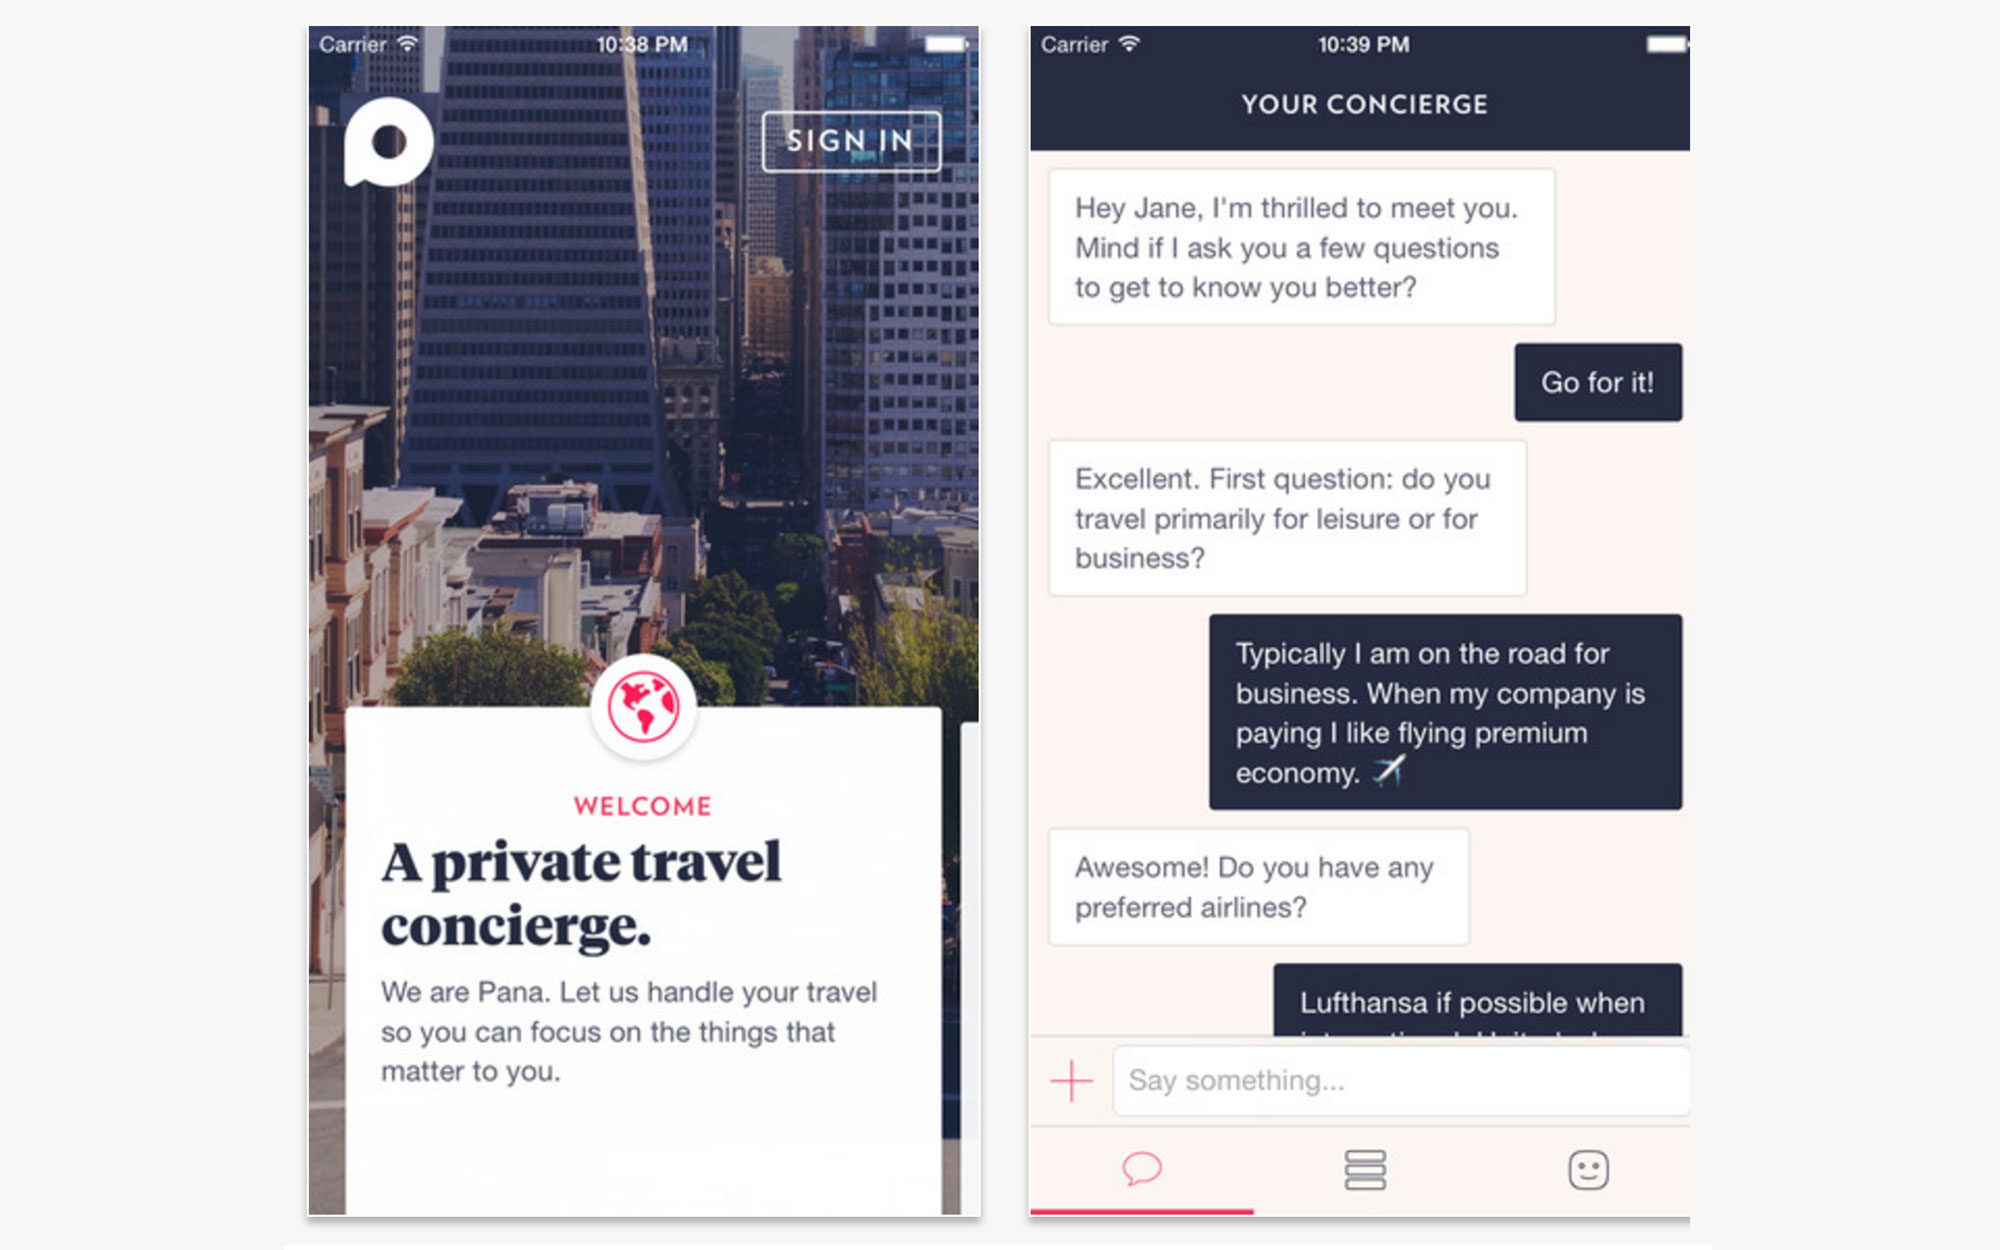 Could Concierge App Pana Replace Travel Agents